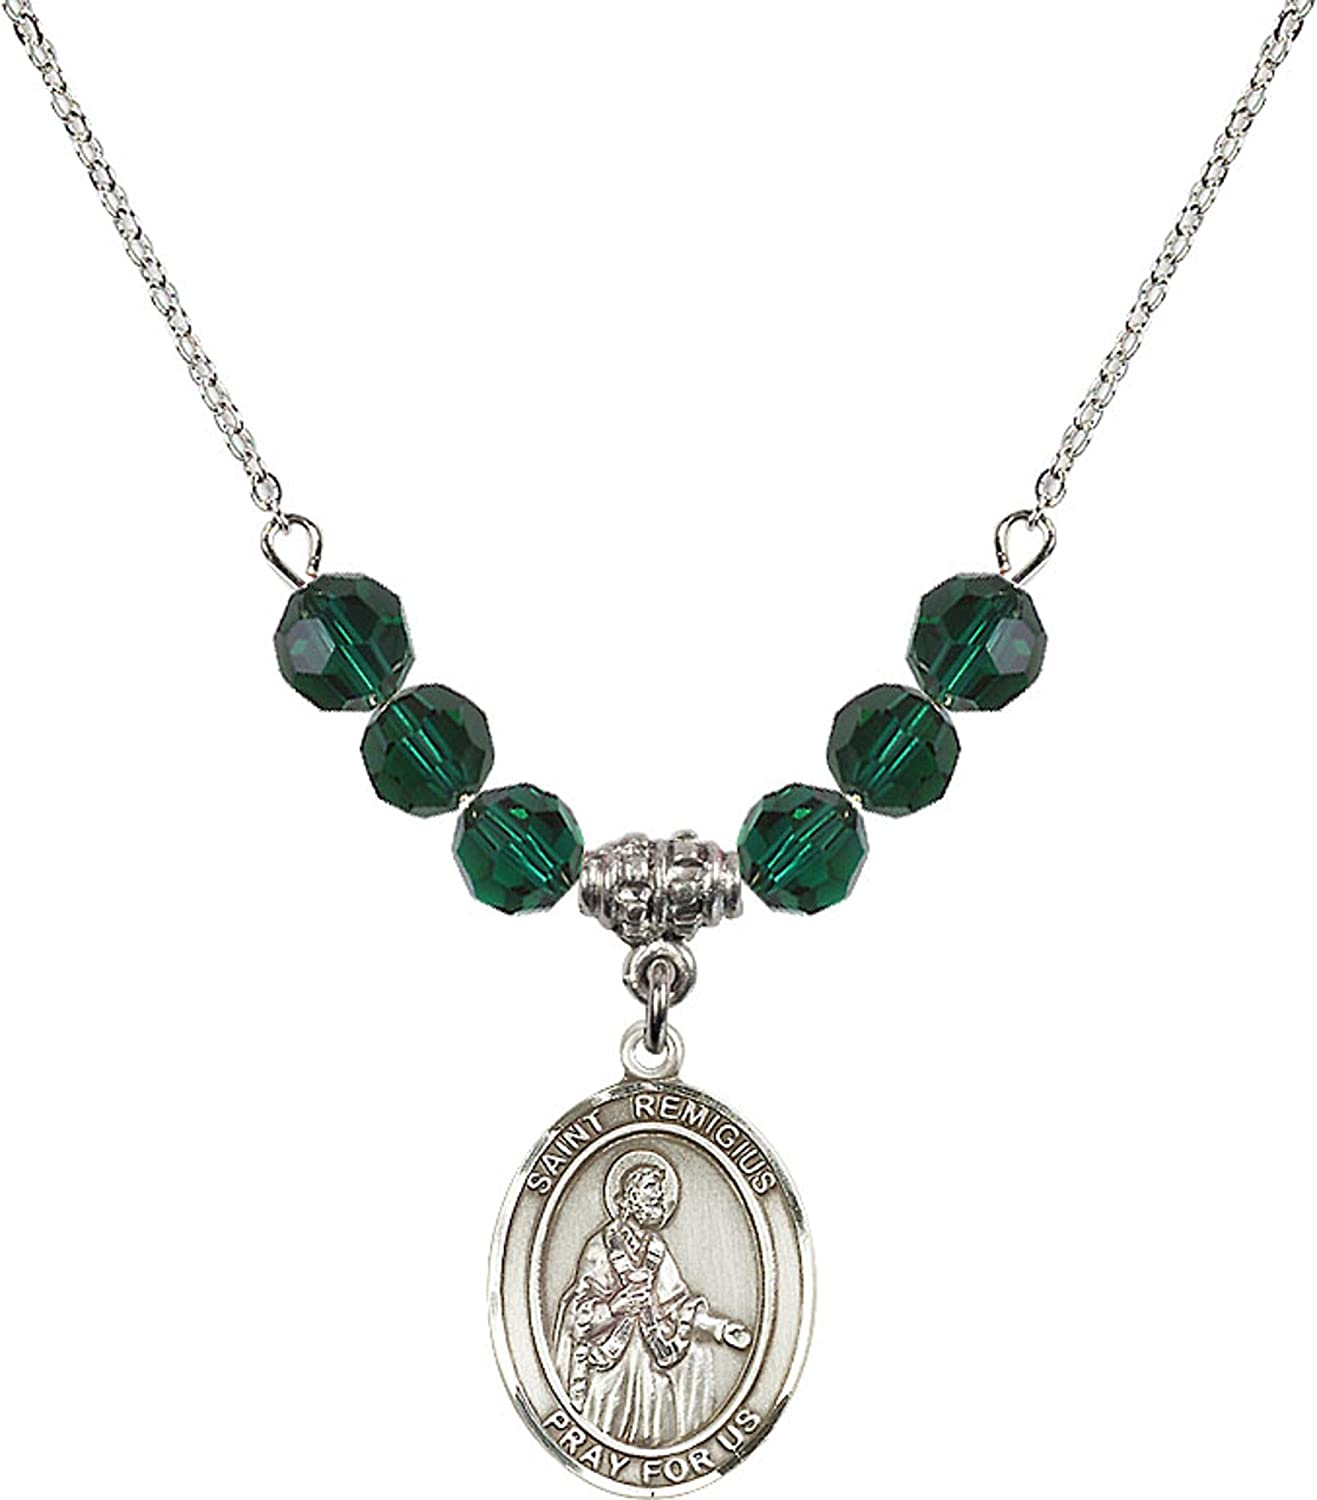 18-Inch Rhodium Plated Necklace with 4mm Faux-Pearl Beads and Sterling Silver Saint Remigius of Reims Charm.